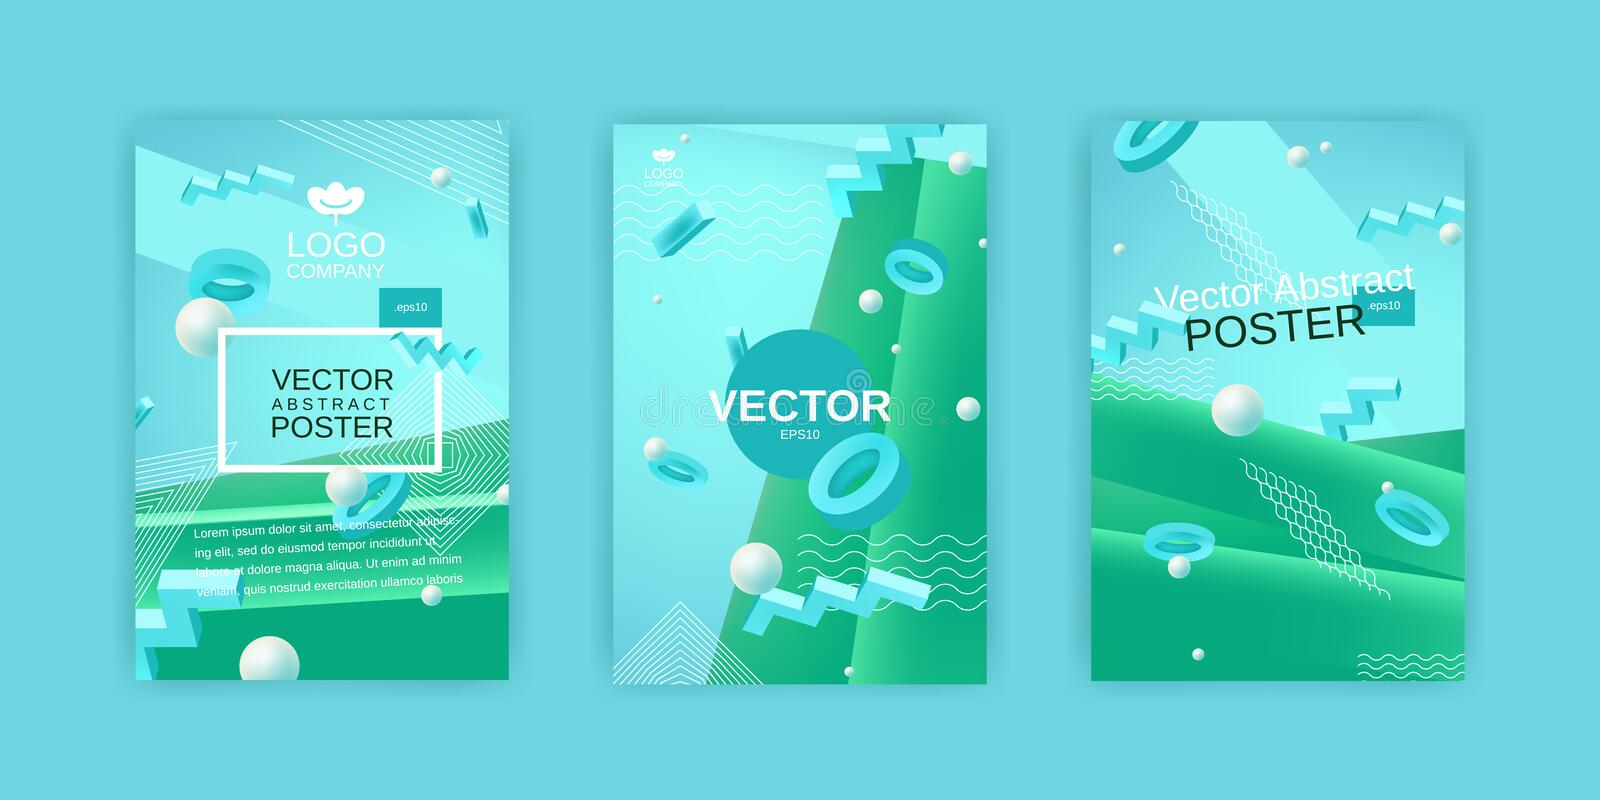 Vector abstract posters set in blue and green colors. Collection of templates for banner or poster design in blue green colors with 3d elements and place for royalty free illustration